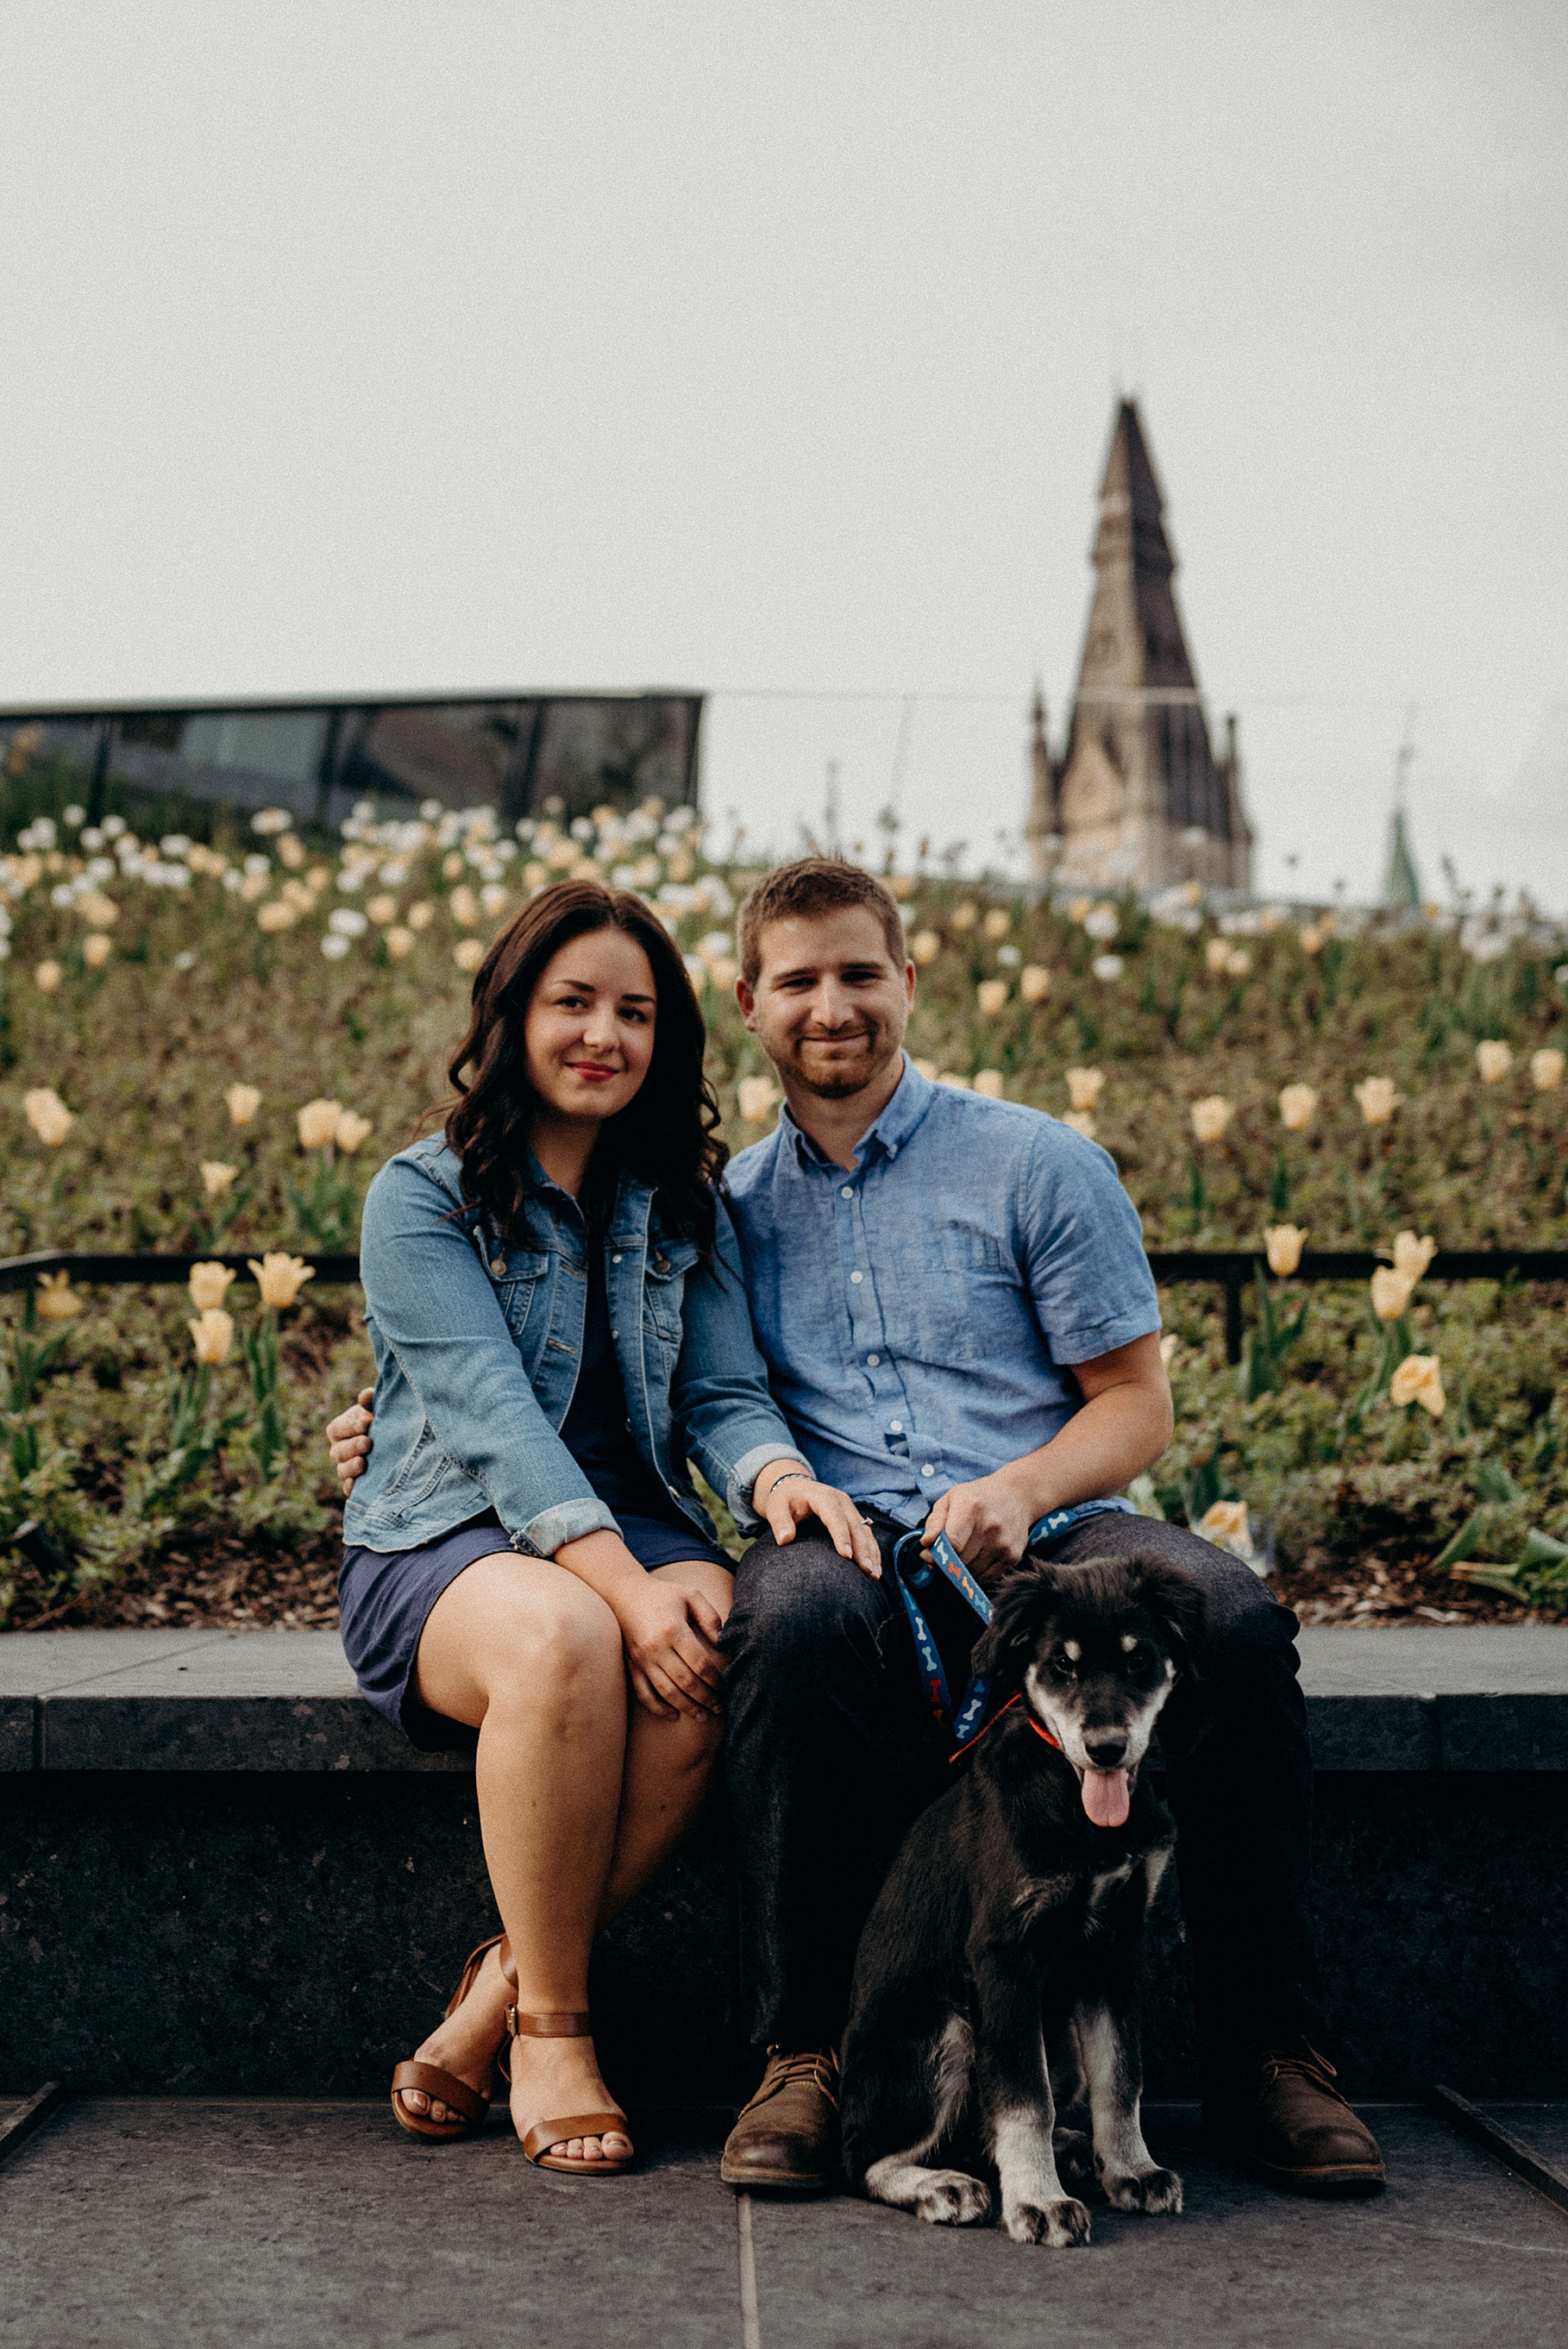 Bringing your Dog or Cat to an engagement session. Mocha Tree Studios Ottawa Toronto Montreal Wedding and Engagement Photographer and Videographer Dark Moody Intimate Authentic Modern Romantic Cinematic Best Candid 10